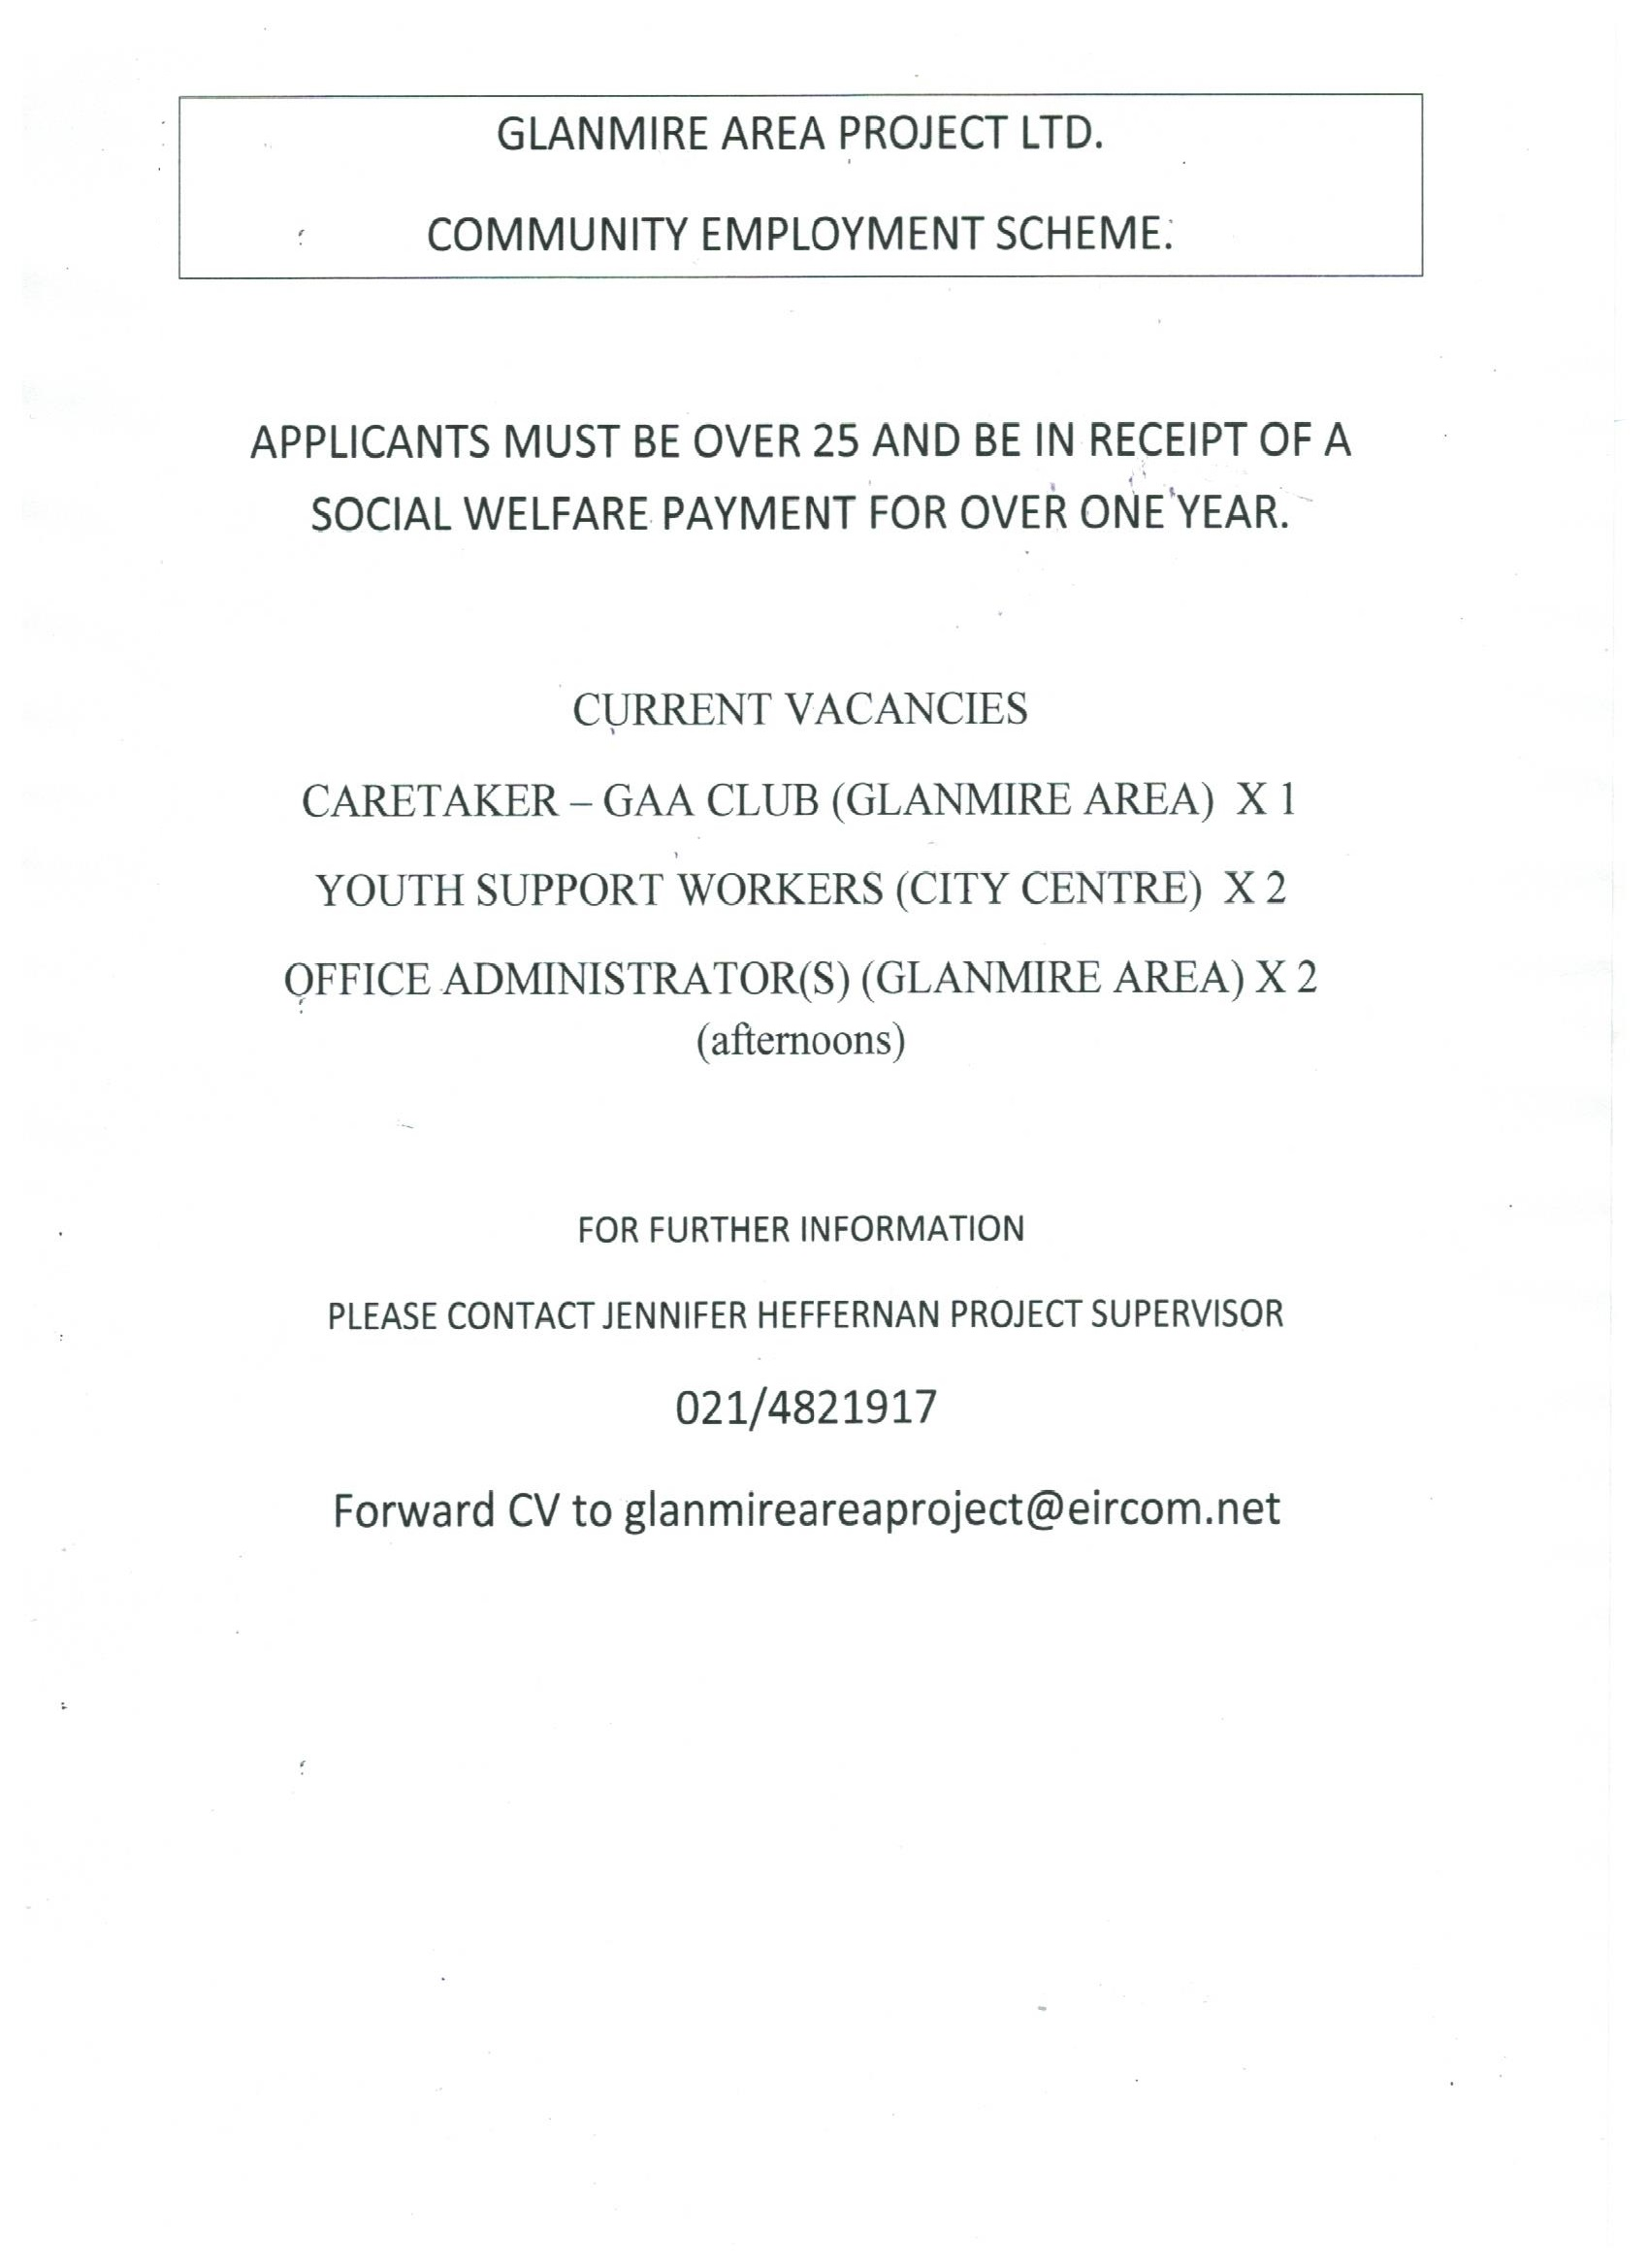 New Community Employment Positions